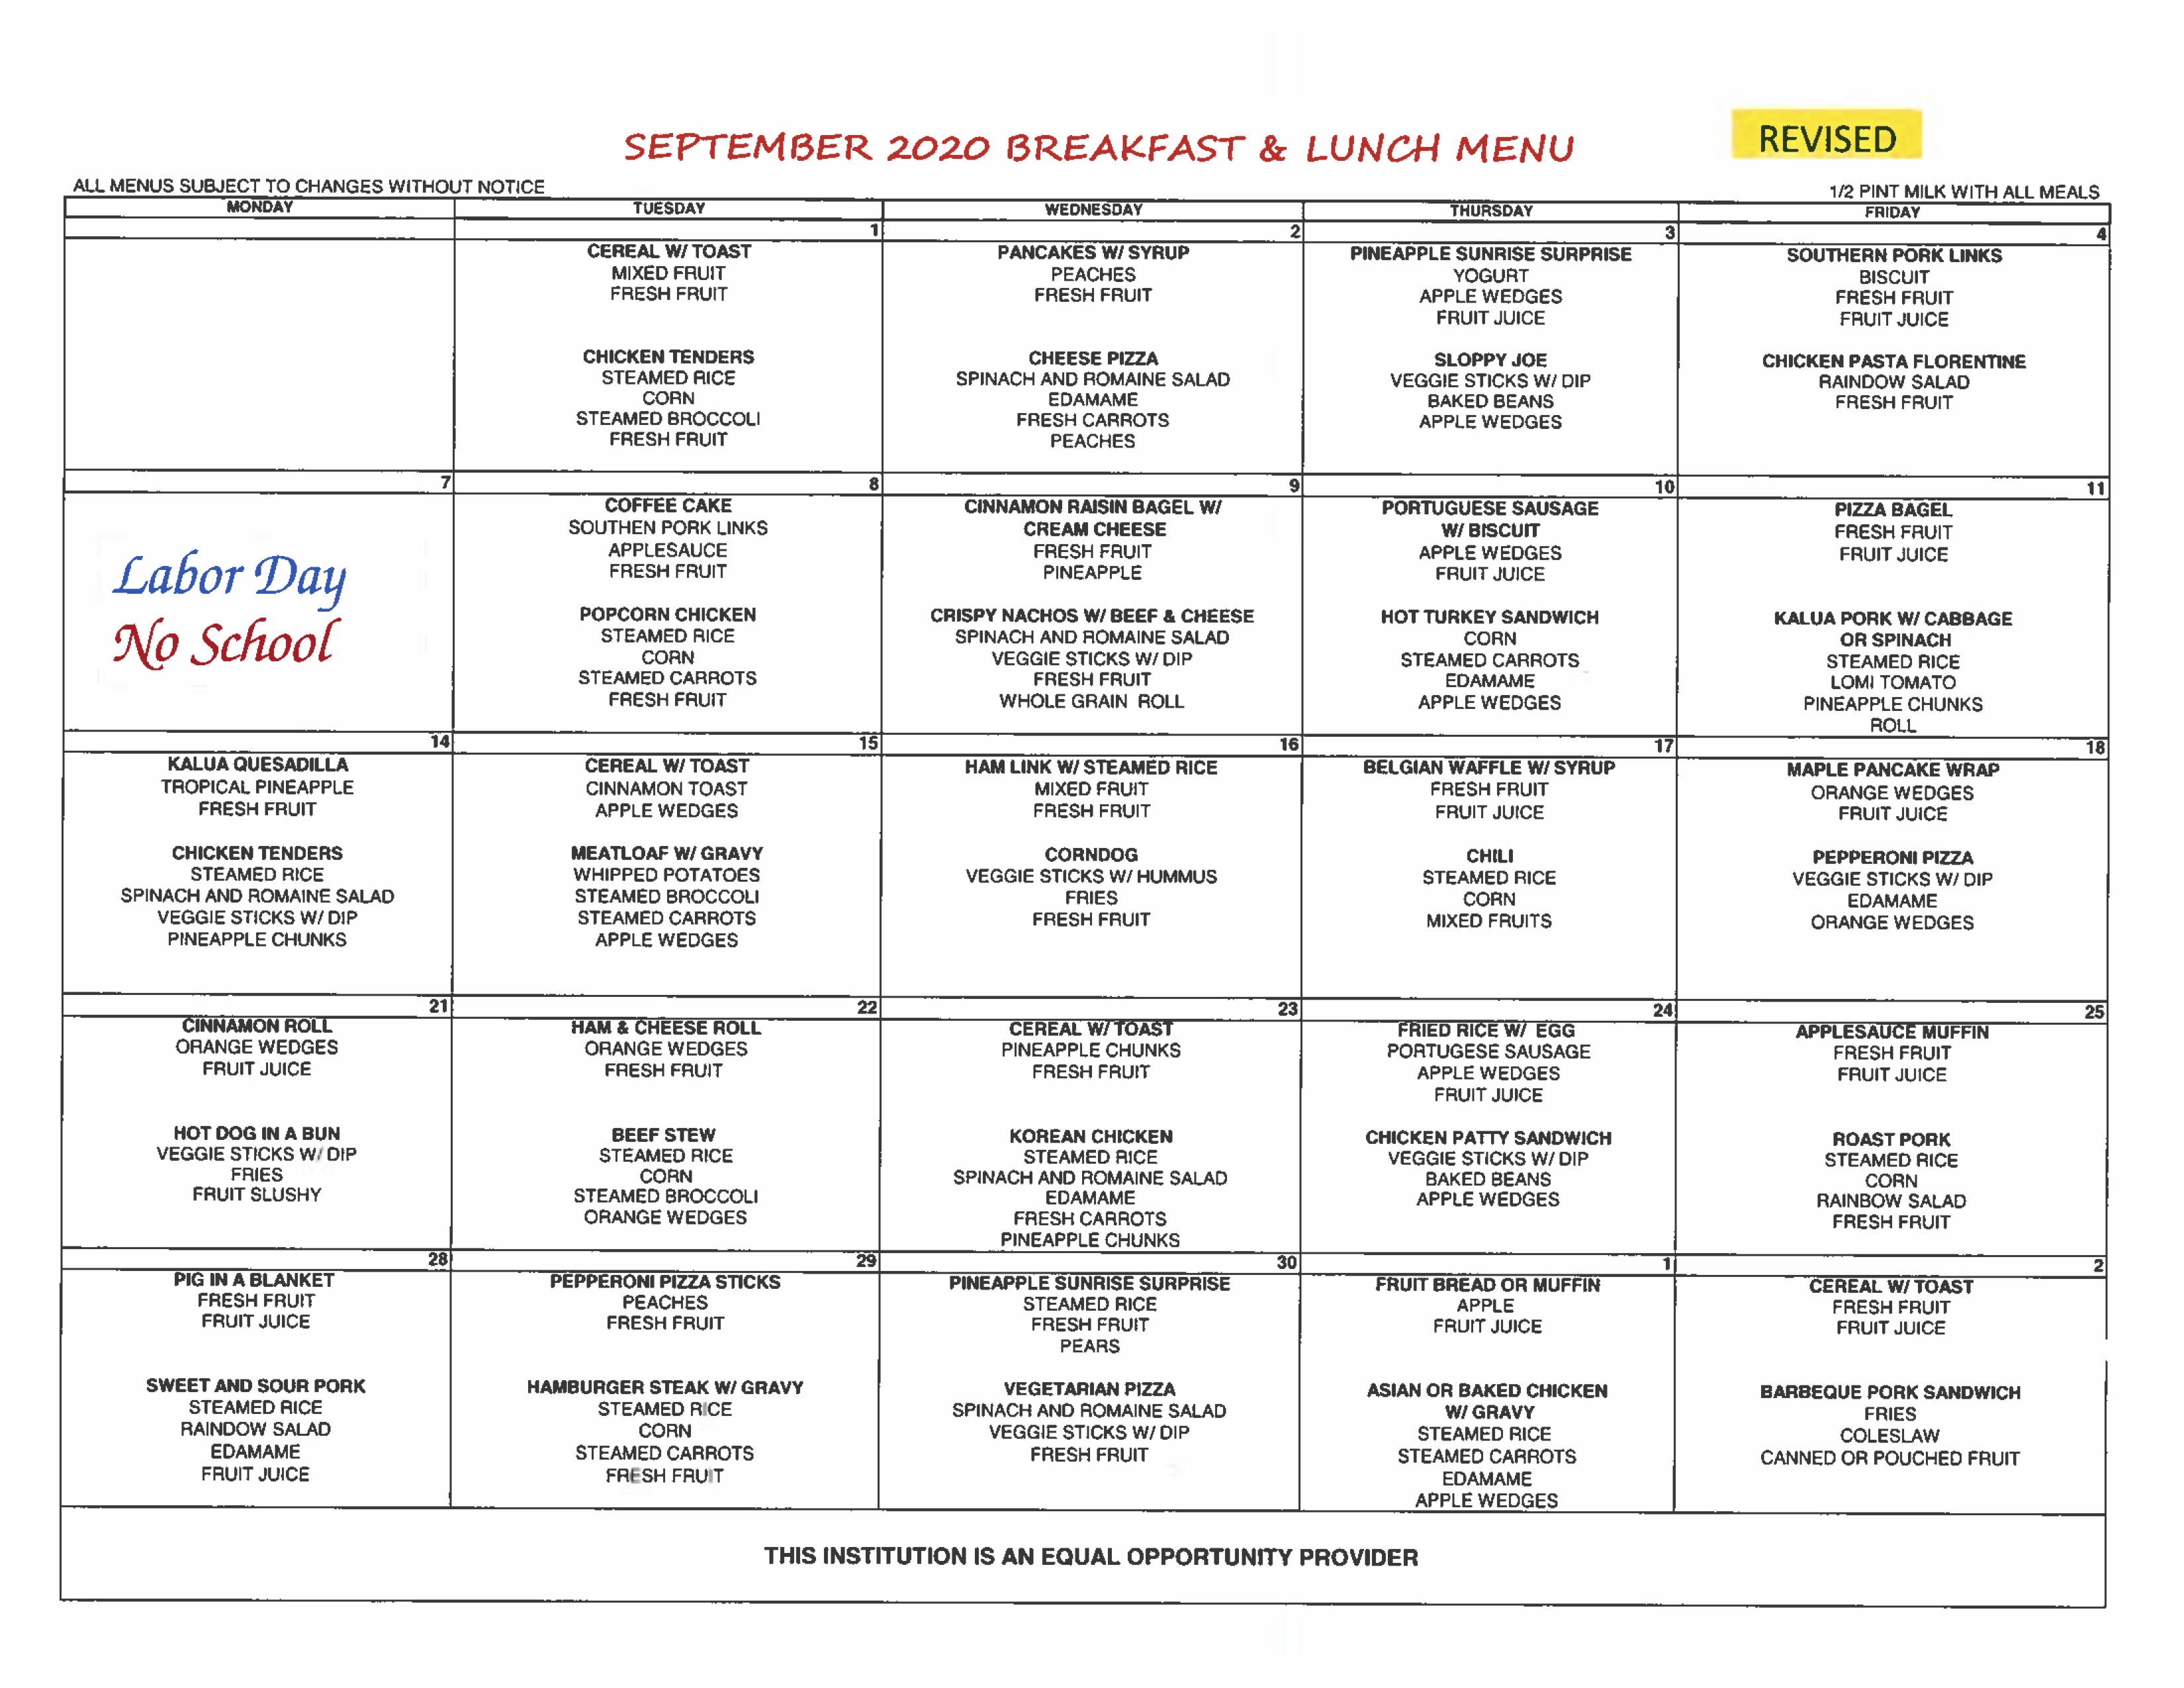 September 2020 Menu REVISED